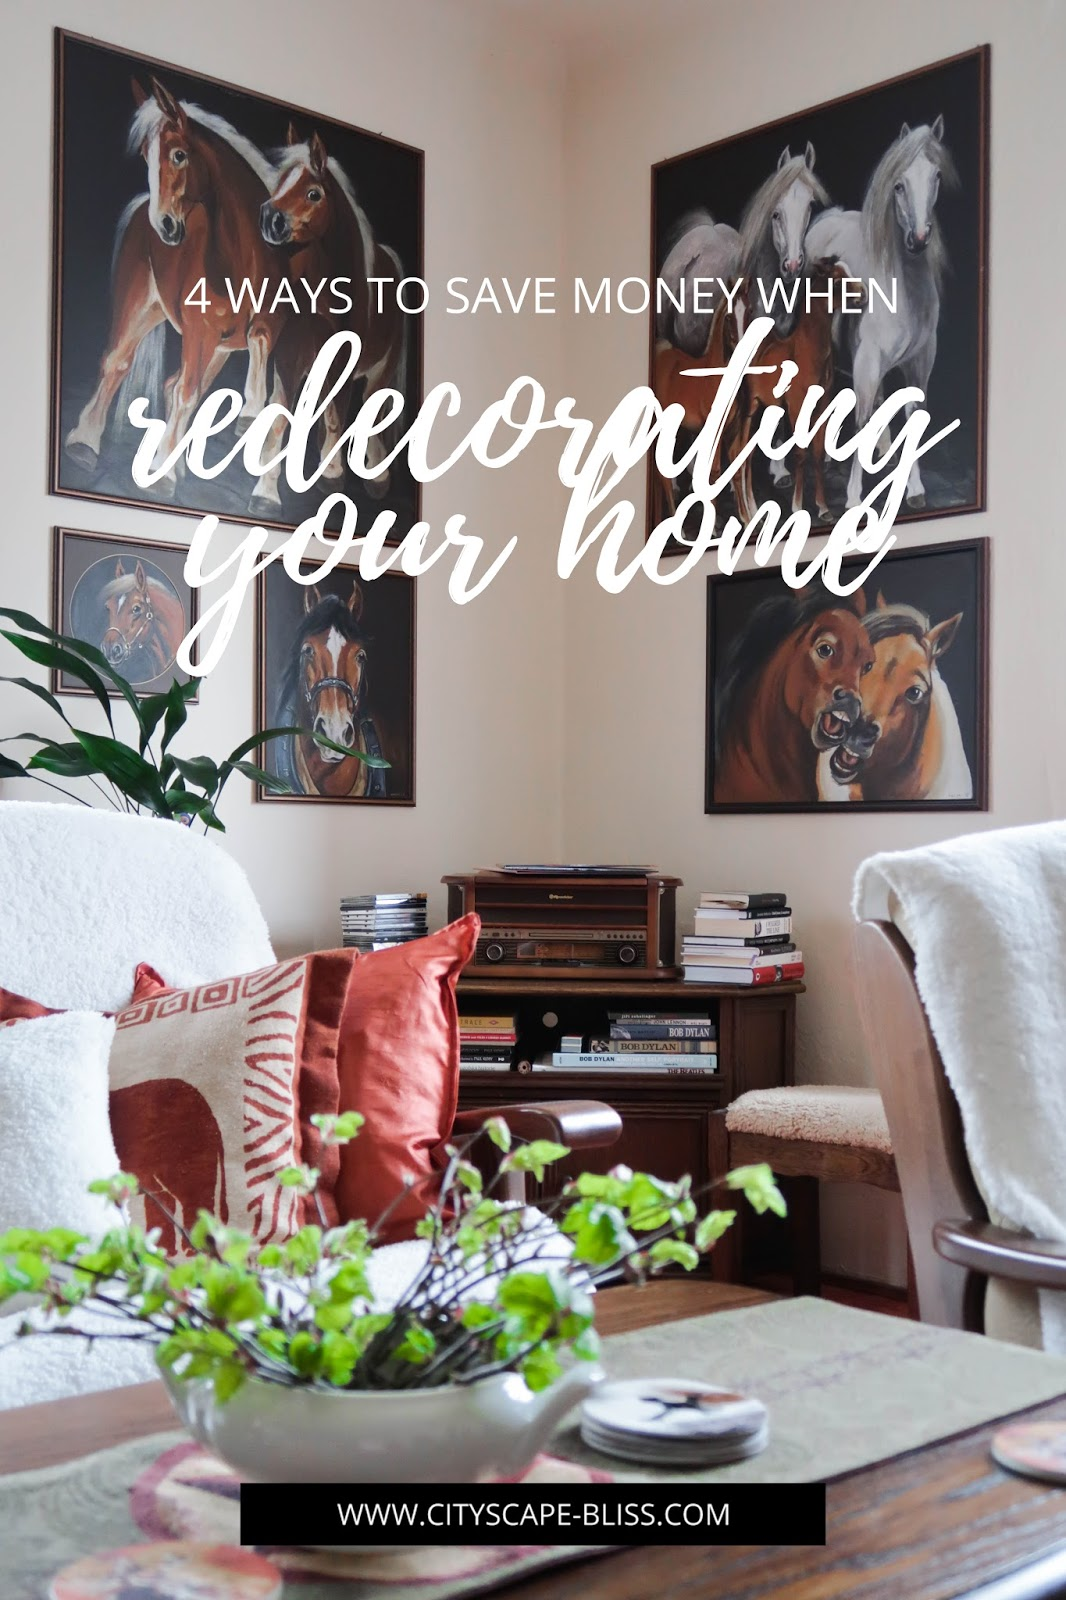 4 ways to save money when redecorating your home